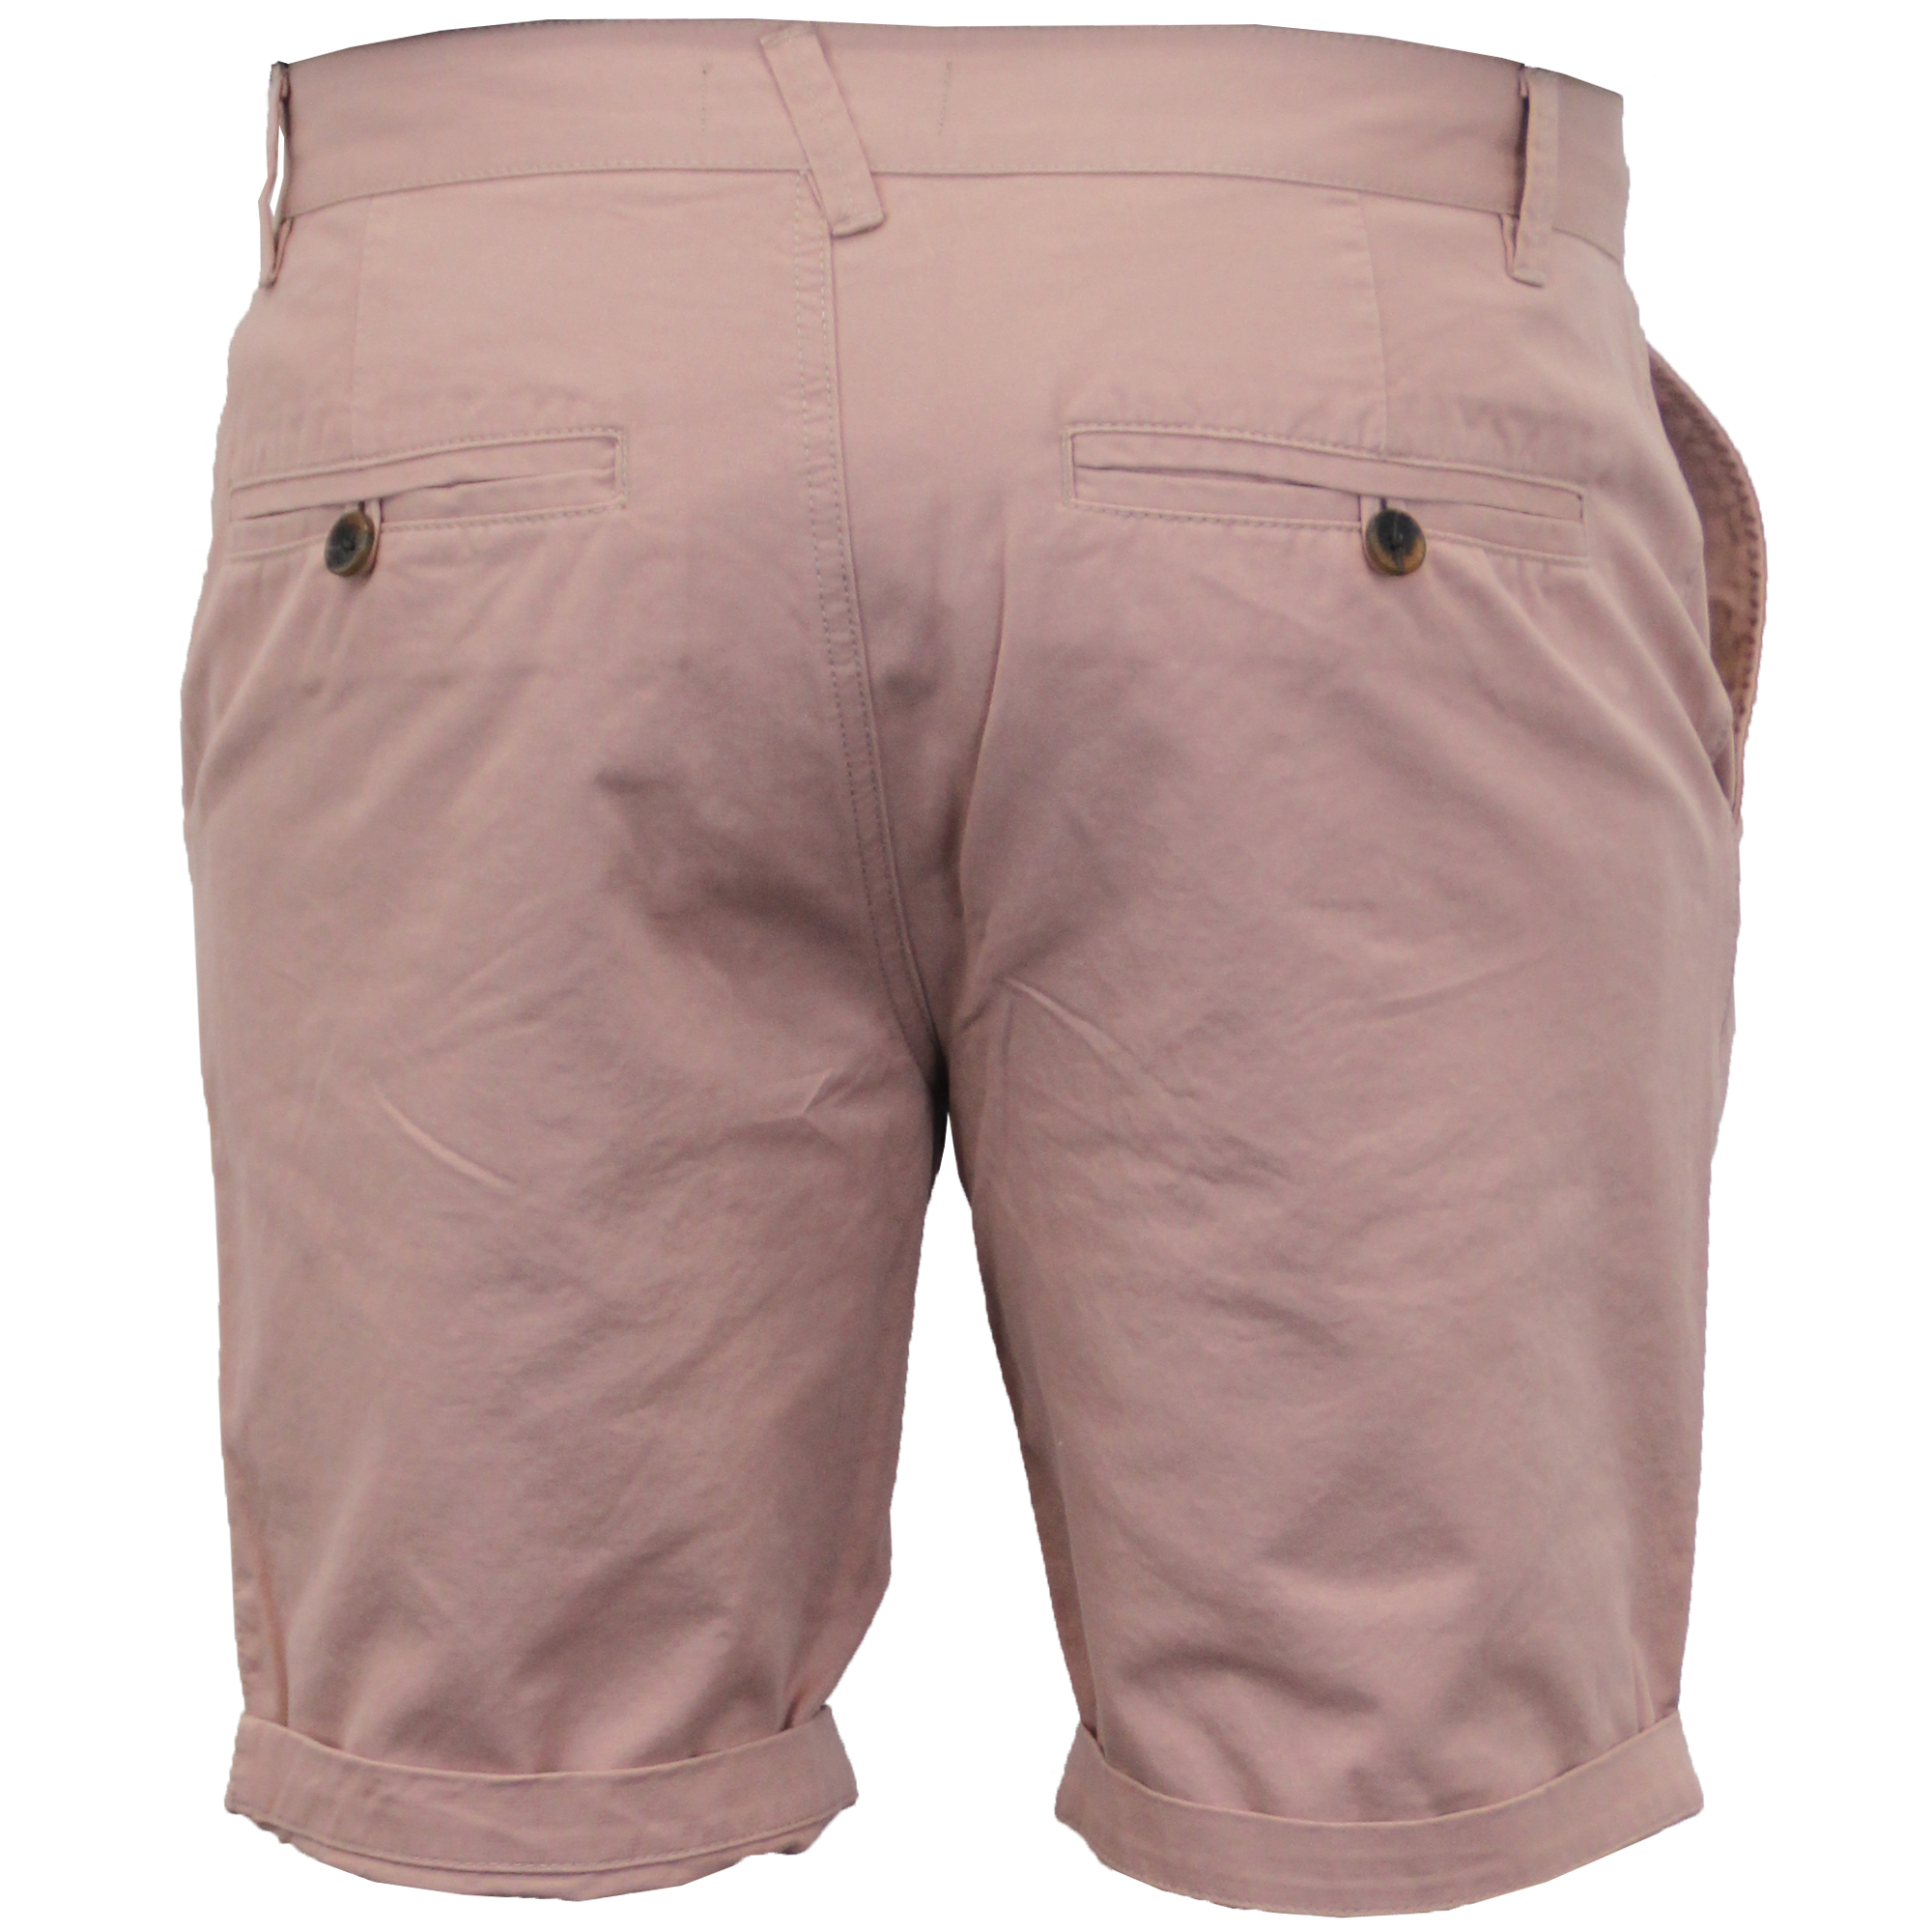 Mens-Chino-Shorts-Threadbare-Pants-Westace-Stallion-Knee-Length-Roll-Up-Summer thumbnail 35